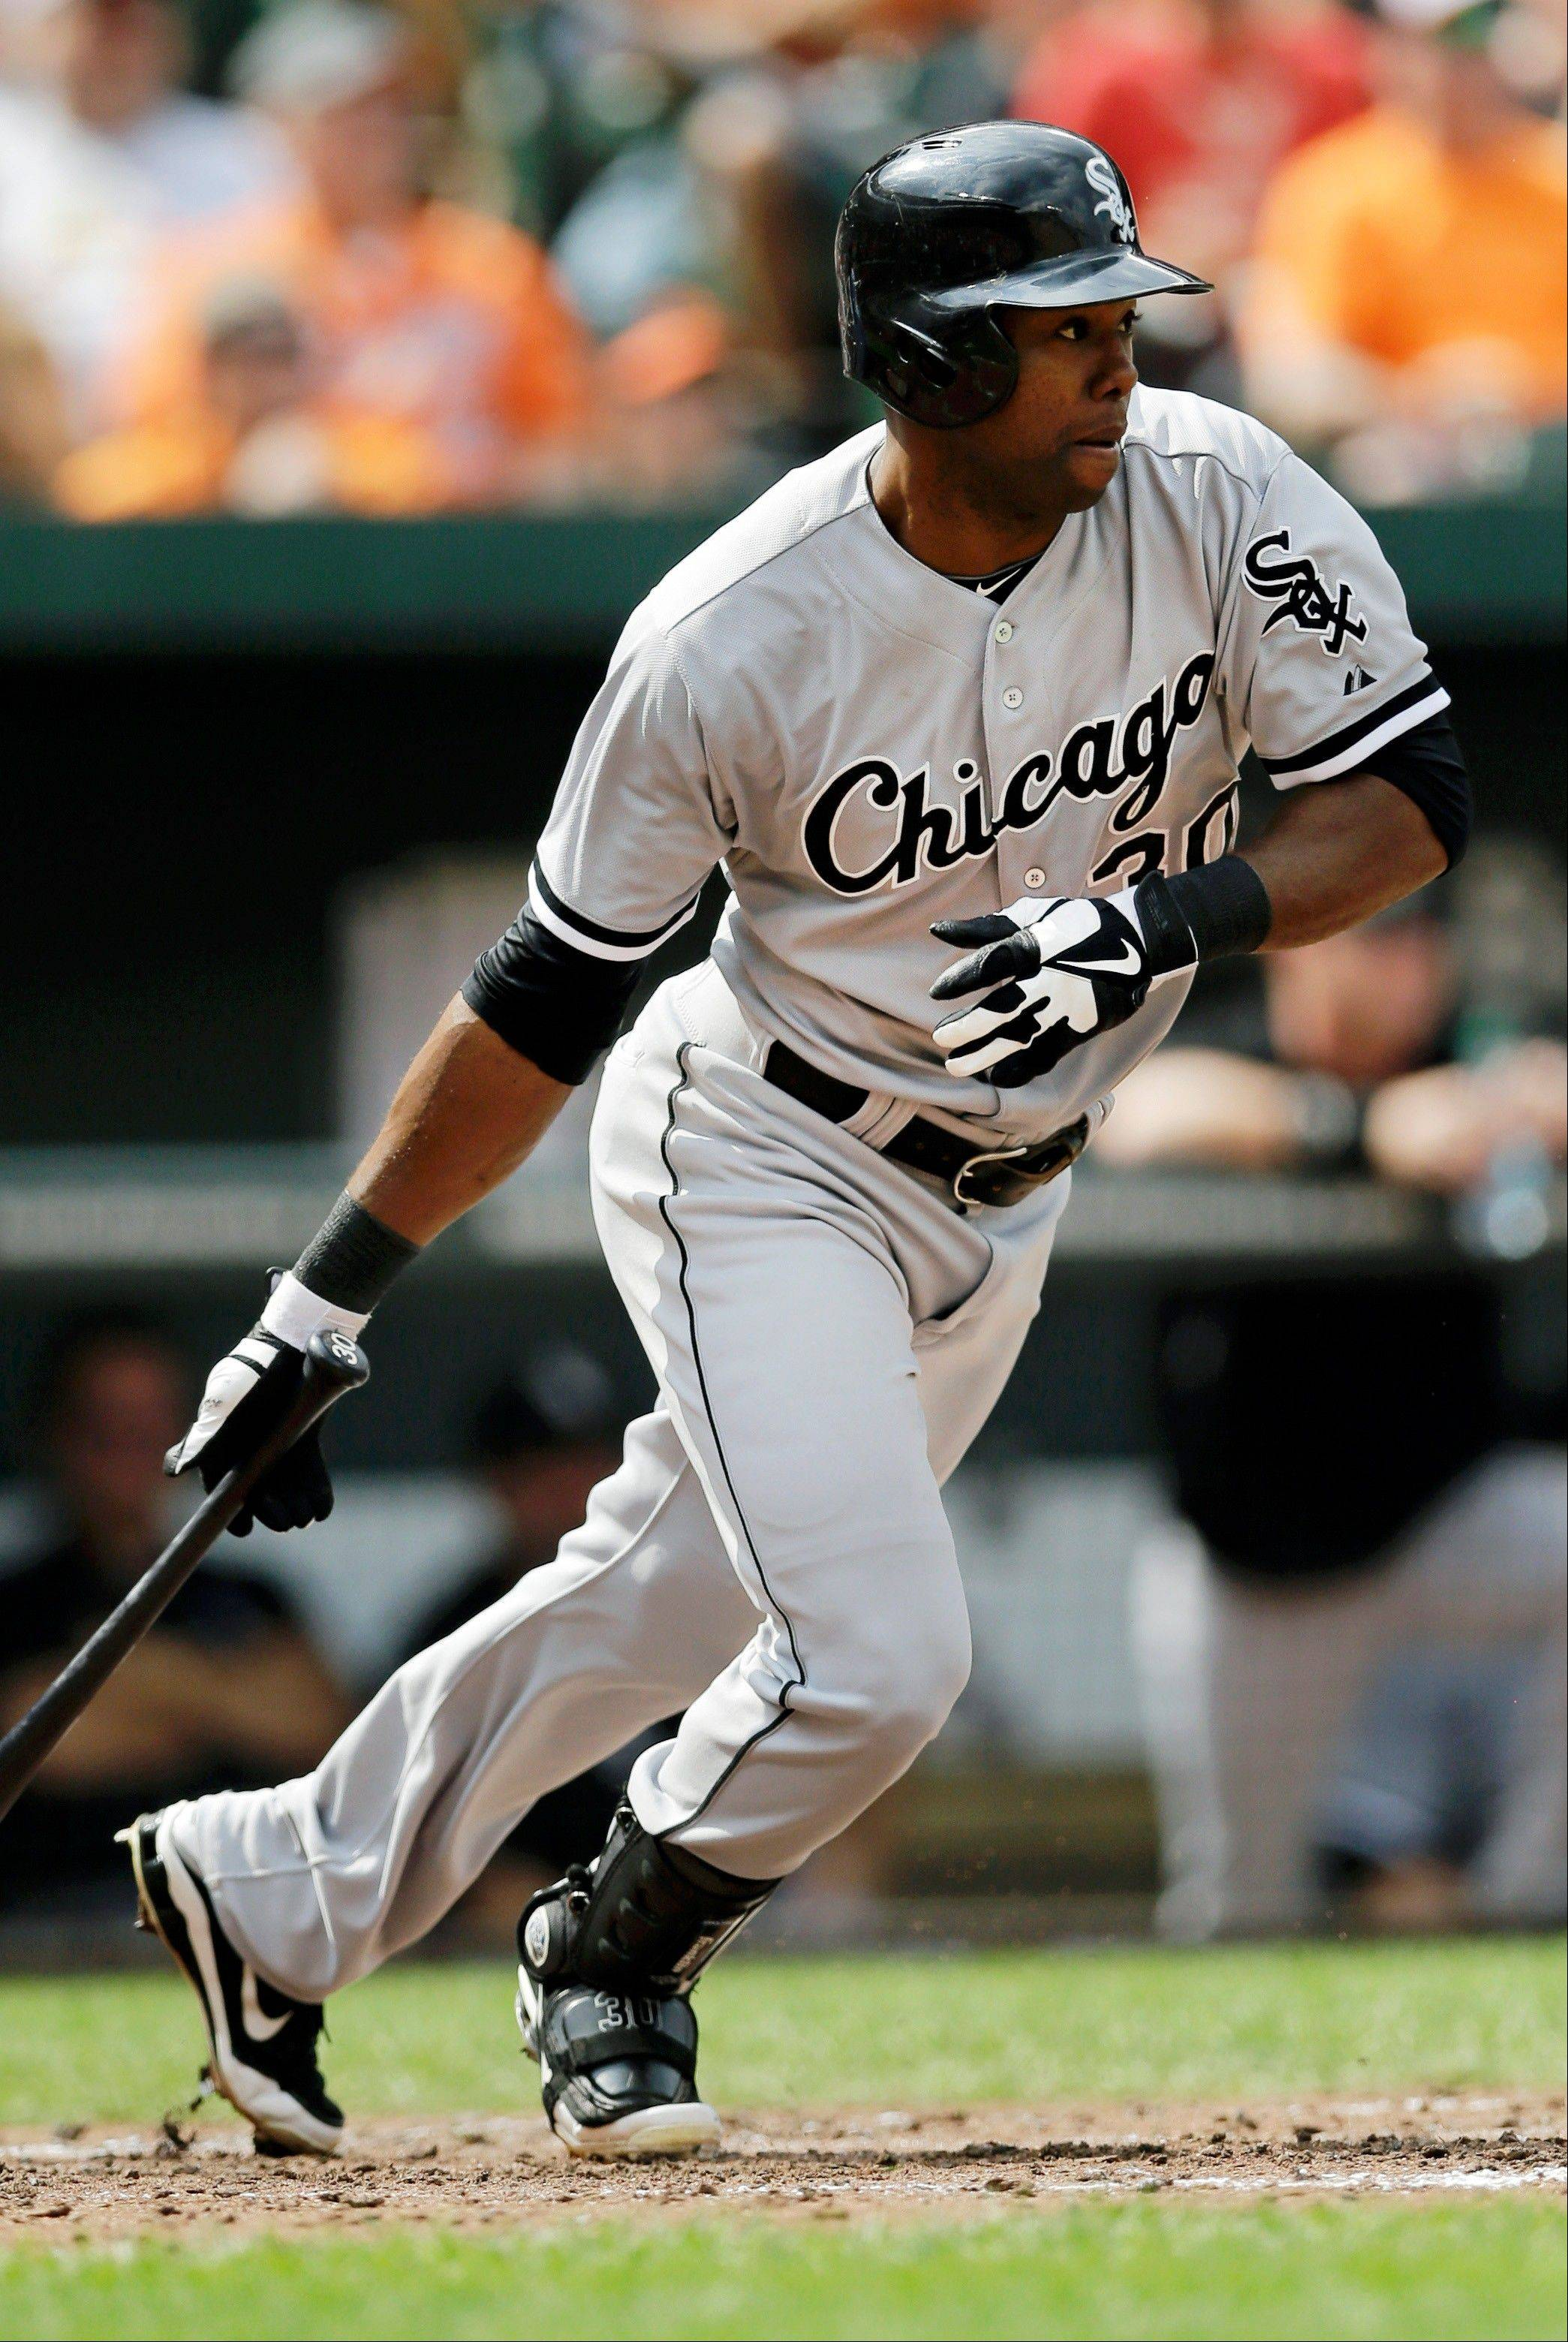 Chicago White Sox' Alejandro De Aza watches his base hit in the fourth inning of a baseball game against the Baltimore Orioles, Sunday, Sept. 8, 2013, in Baltimore. Jeff Keppinger scored on the play.